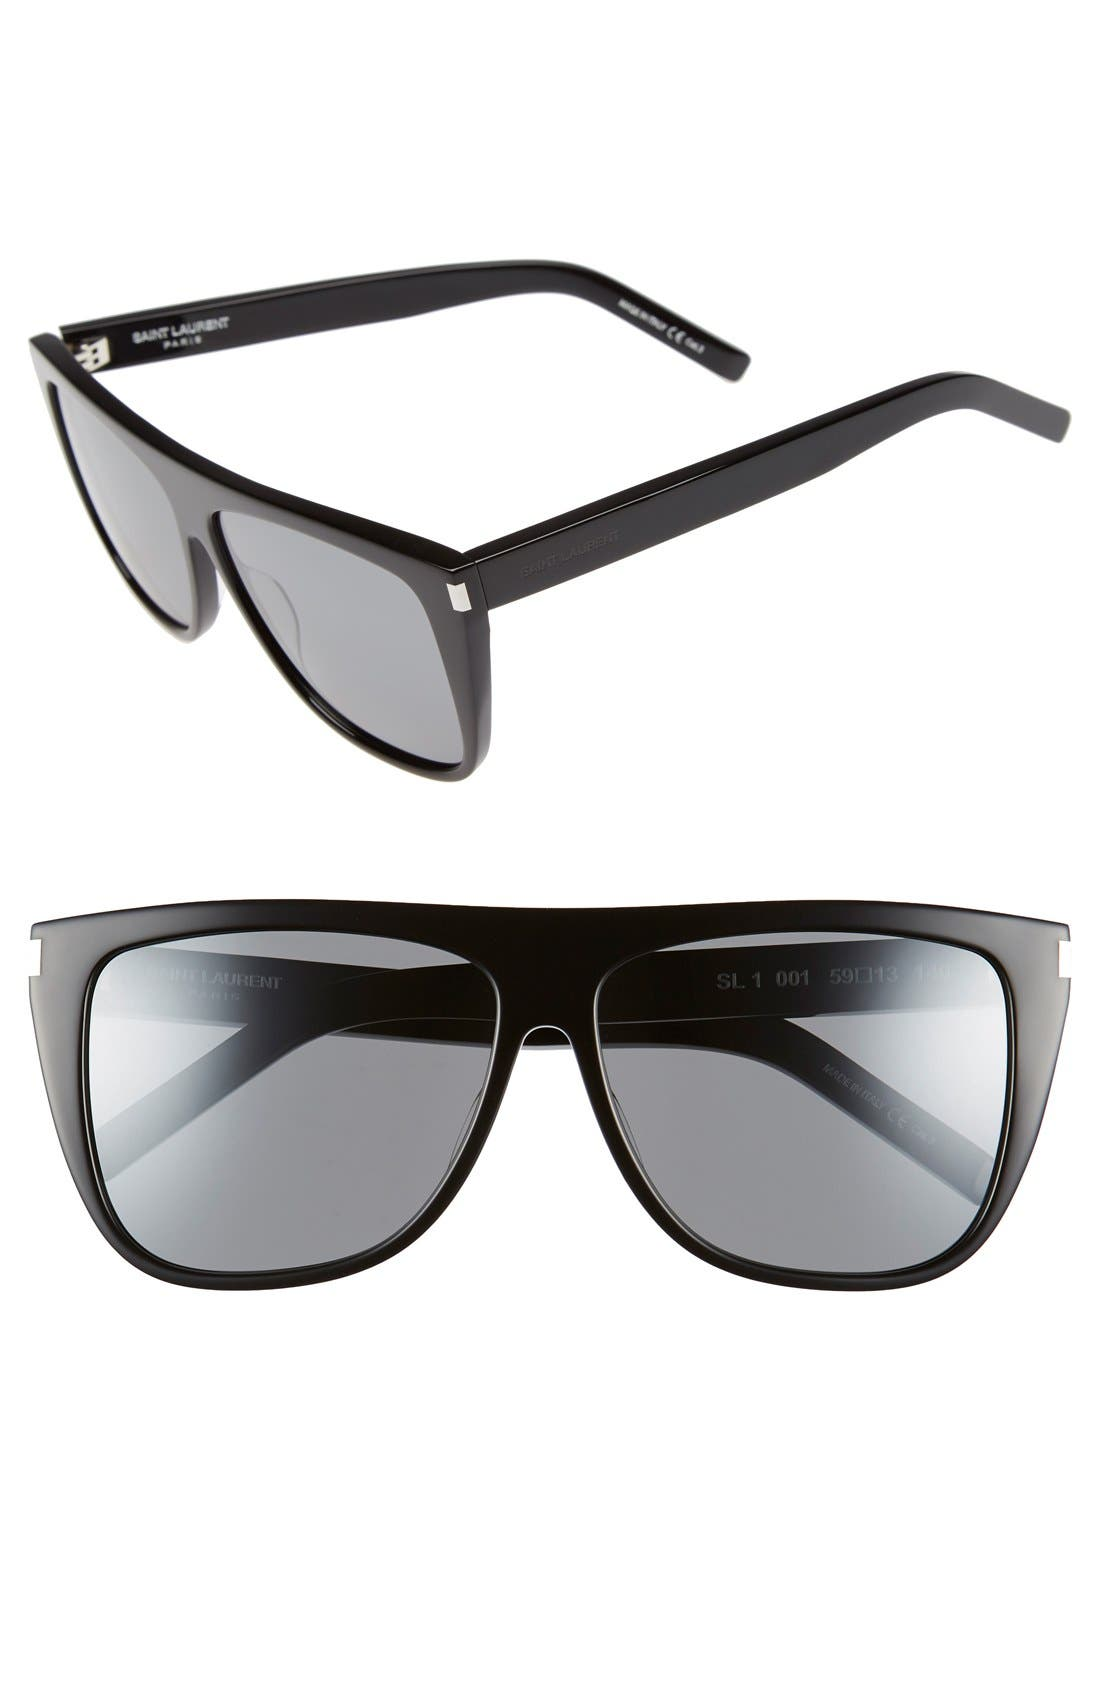 Alternate Image 1 Selected - Saint Laurent SL1 59mm Flat Top Sunglasses